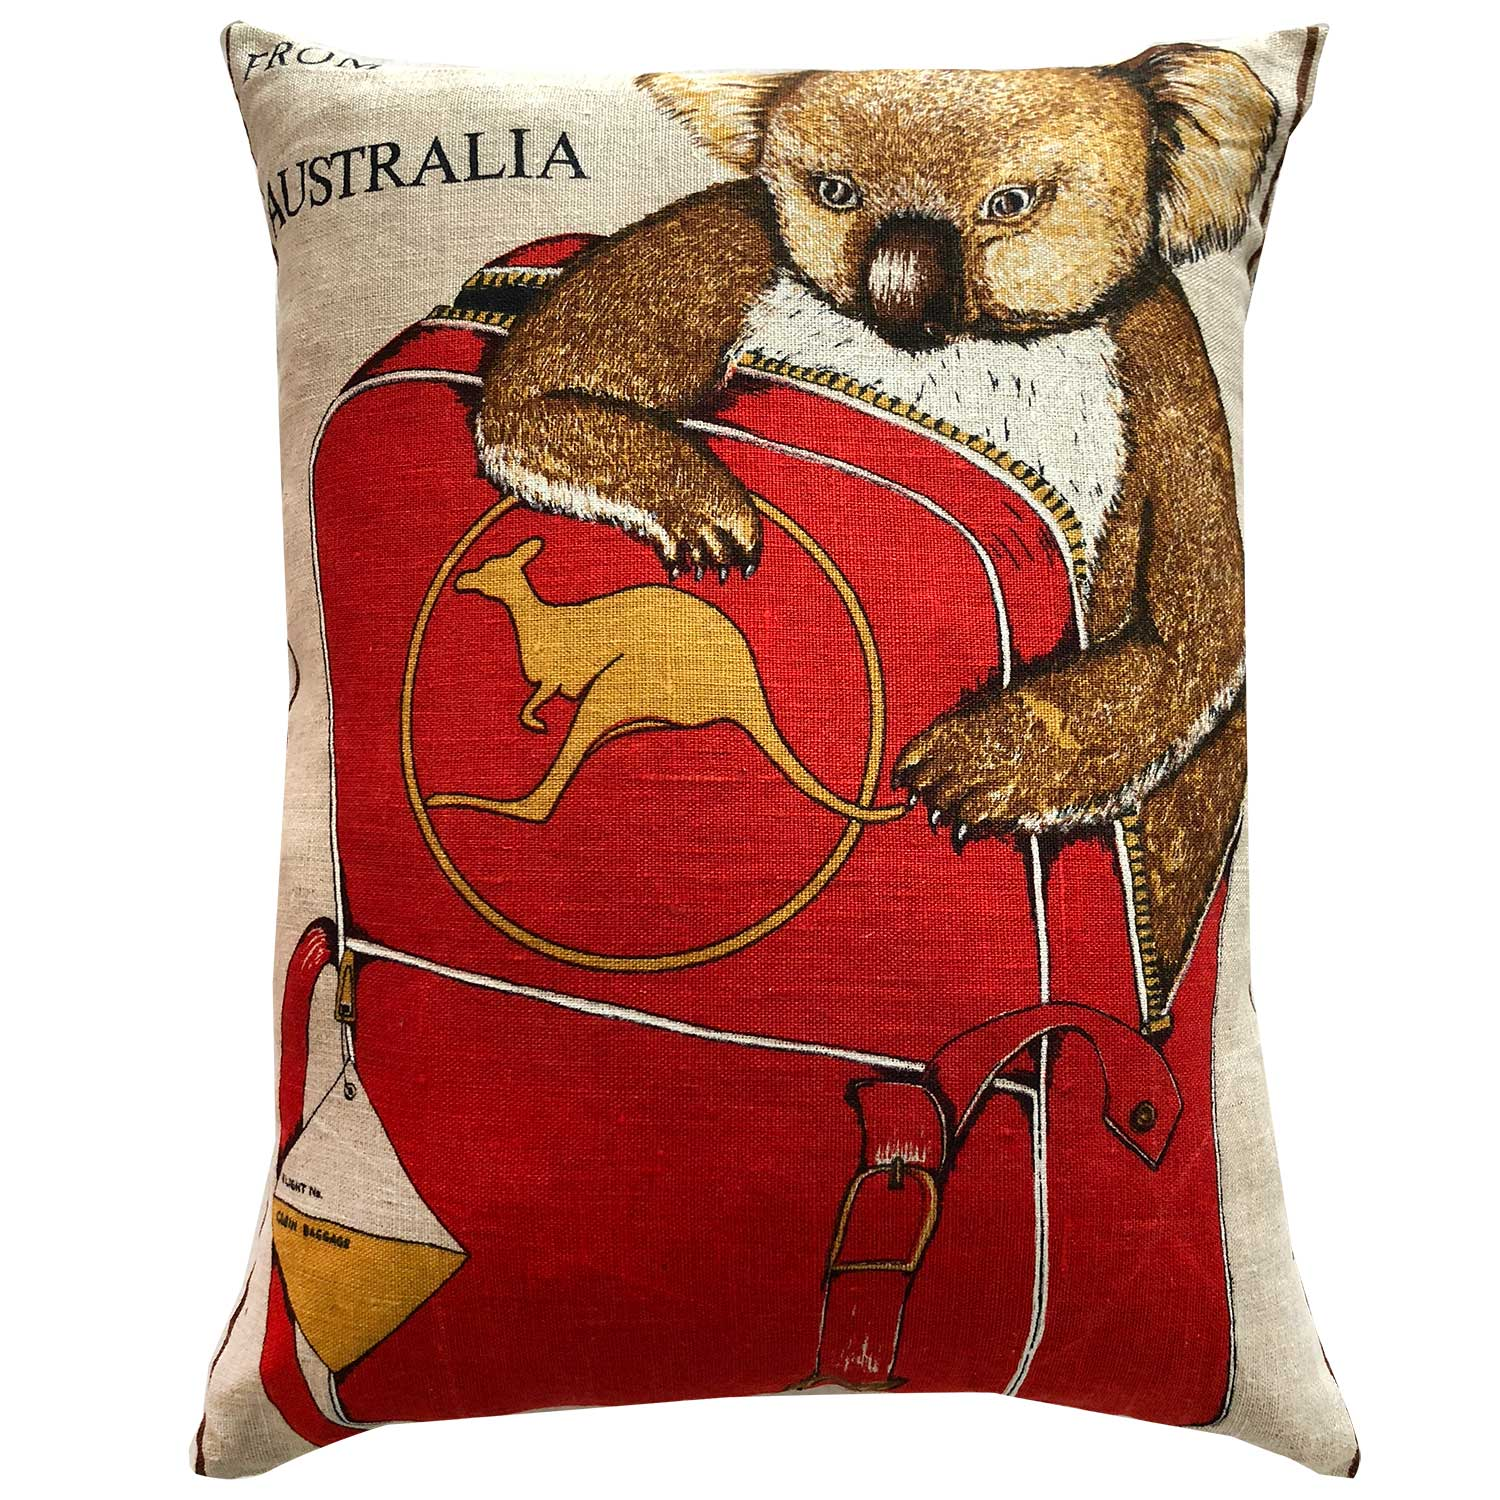 Koalas travel Qantas